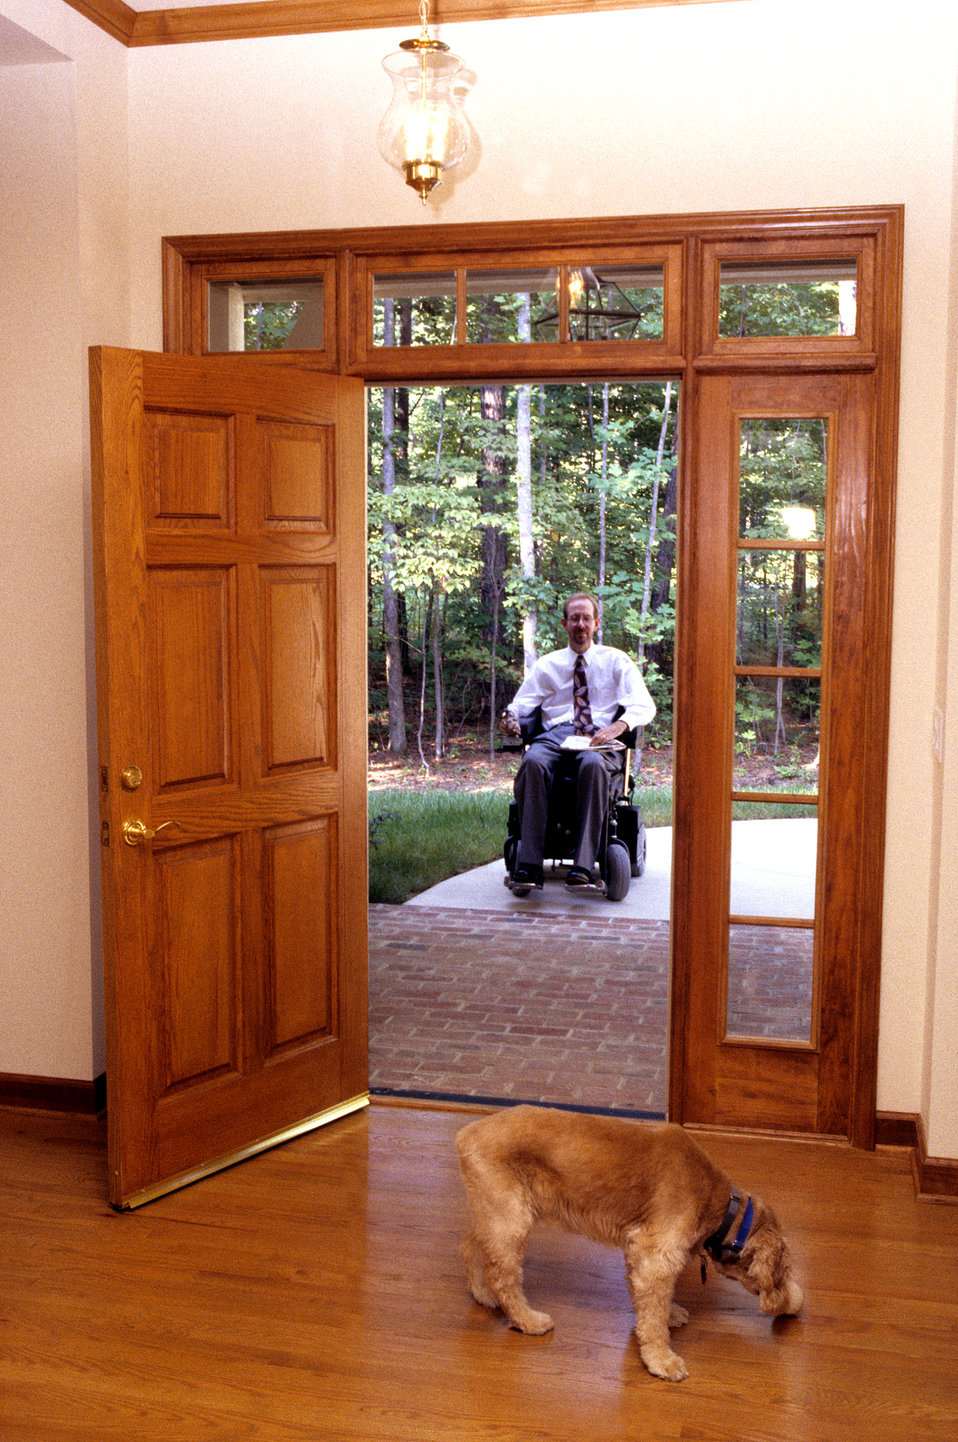 This 1996 image depicted a man seated in his motorized wheelchair just outside his home, and was about to pass inside through his opened fro